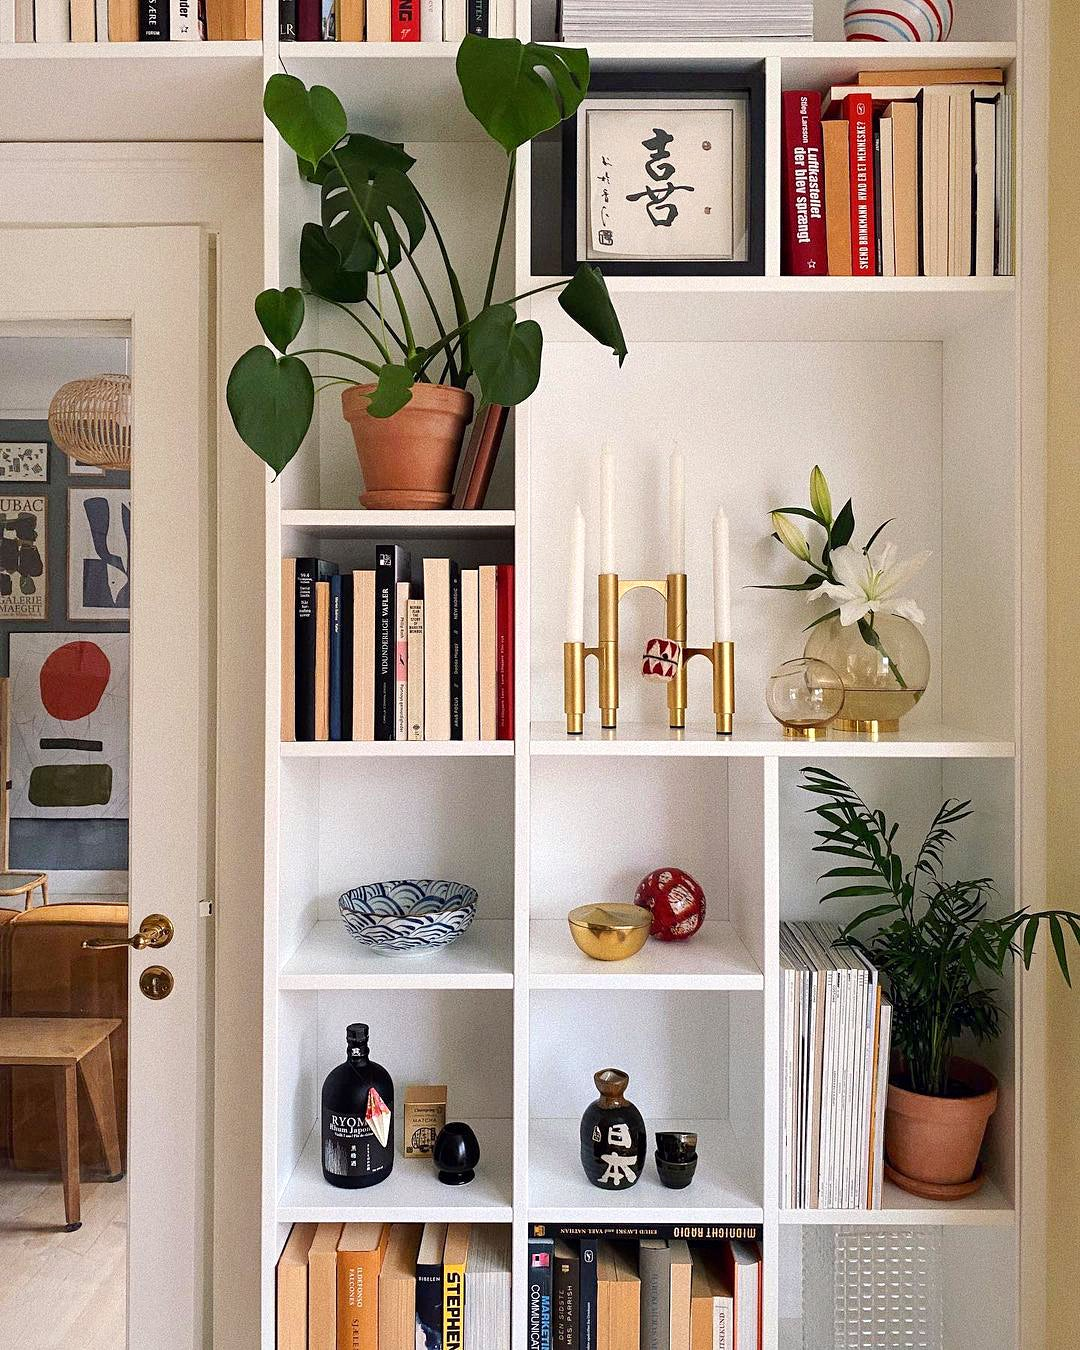 open bookshelves stocked with candles